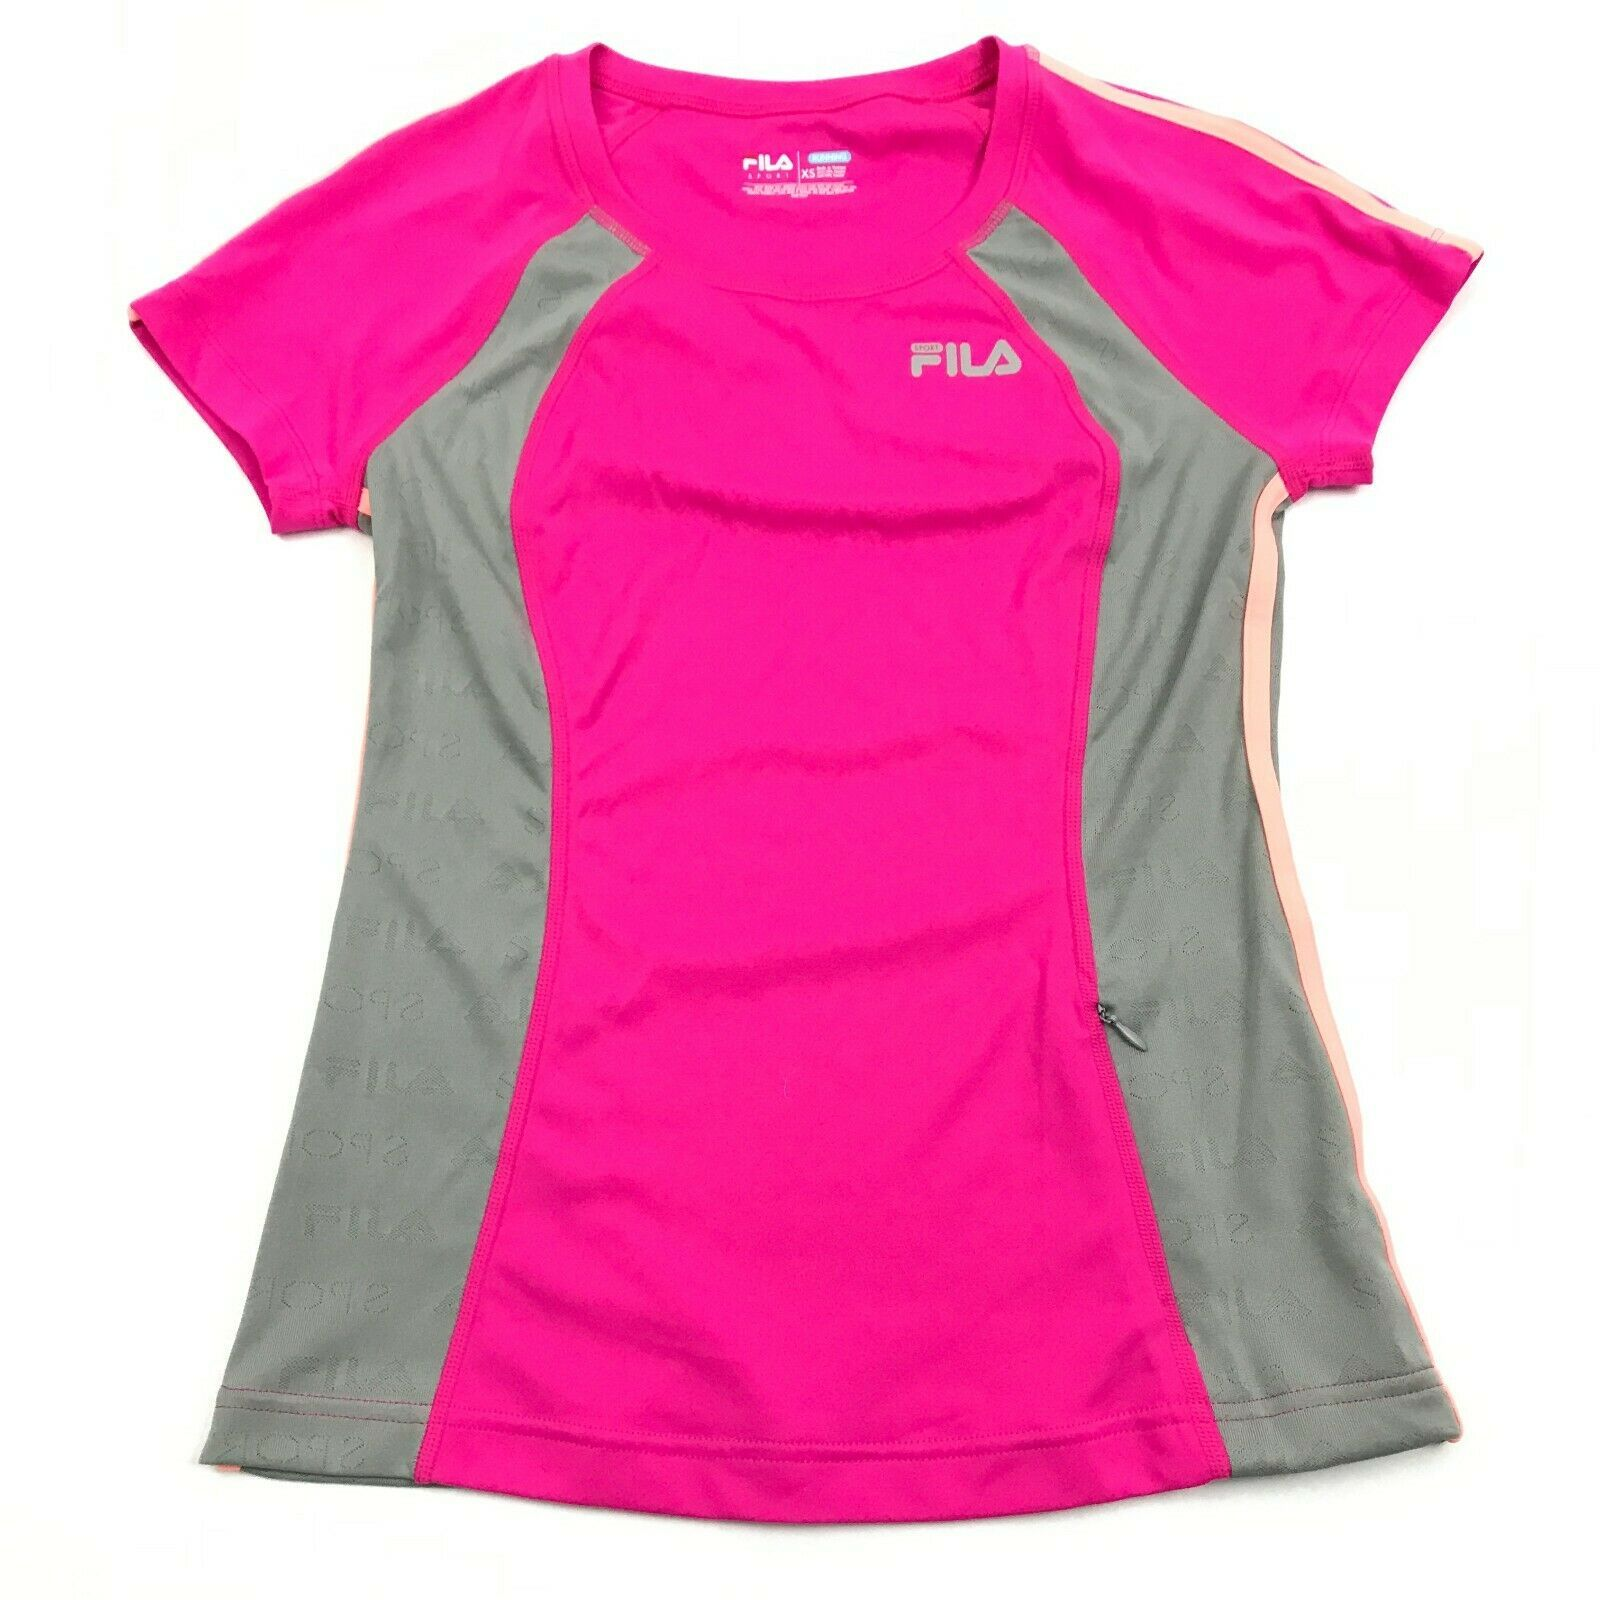 Primary image for NEW FILA Running Dry Fit Shirt Women's XS Extra Small Pink 3M Safety Reflective